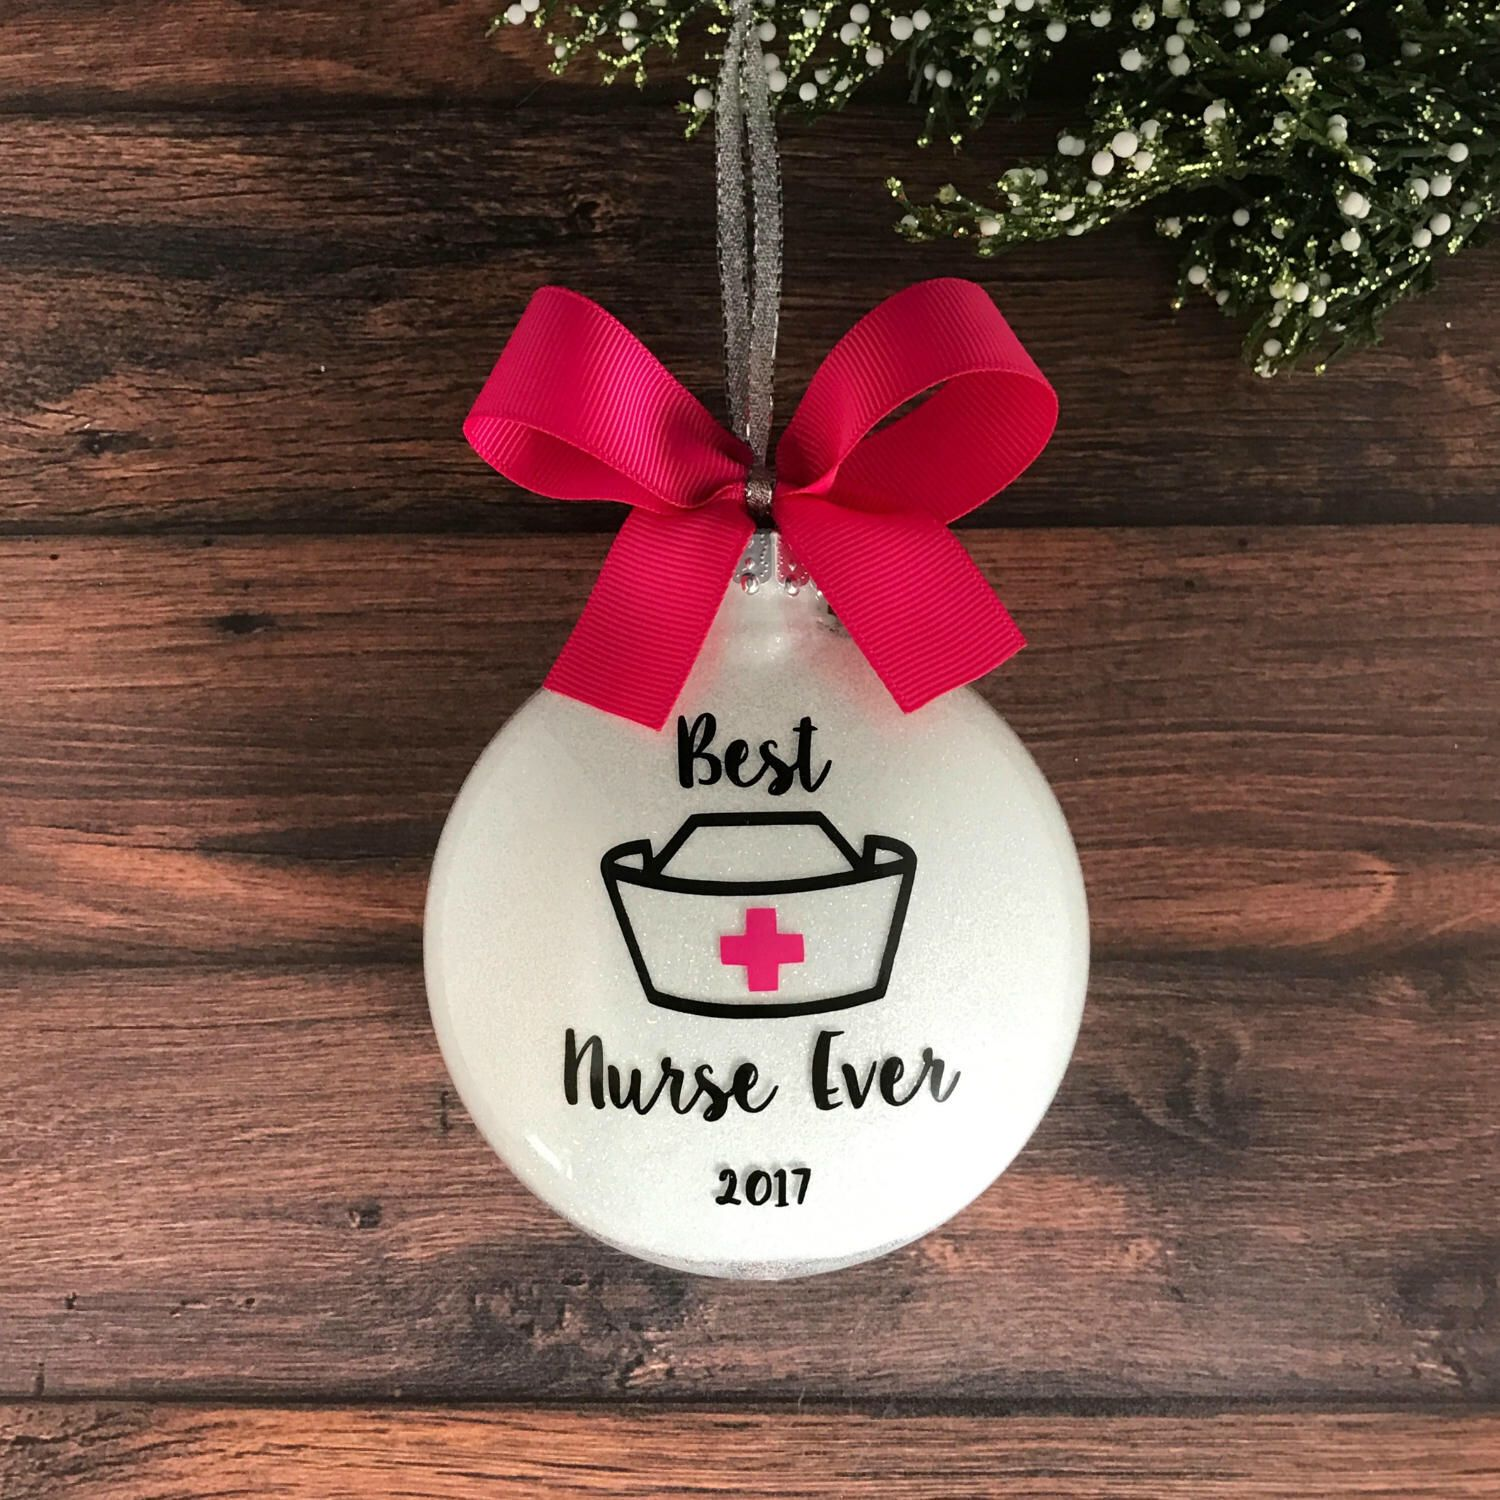 Personalized Nurse Gift Ideas, Nurse Ornament, Gift For Nurse Thank ...